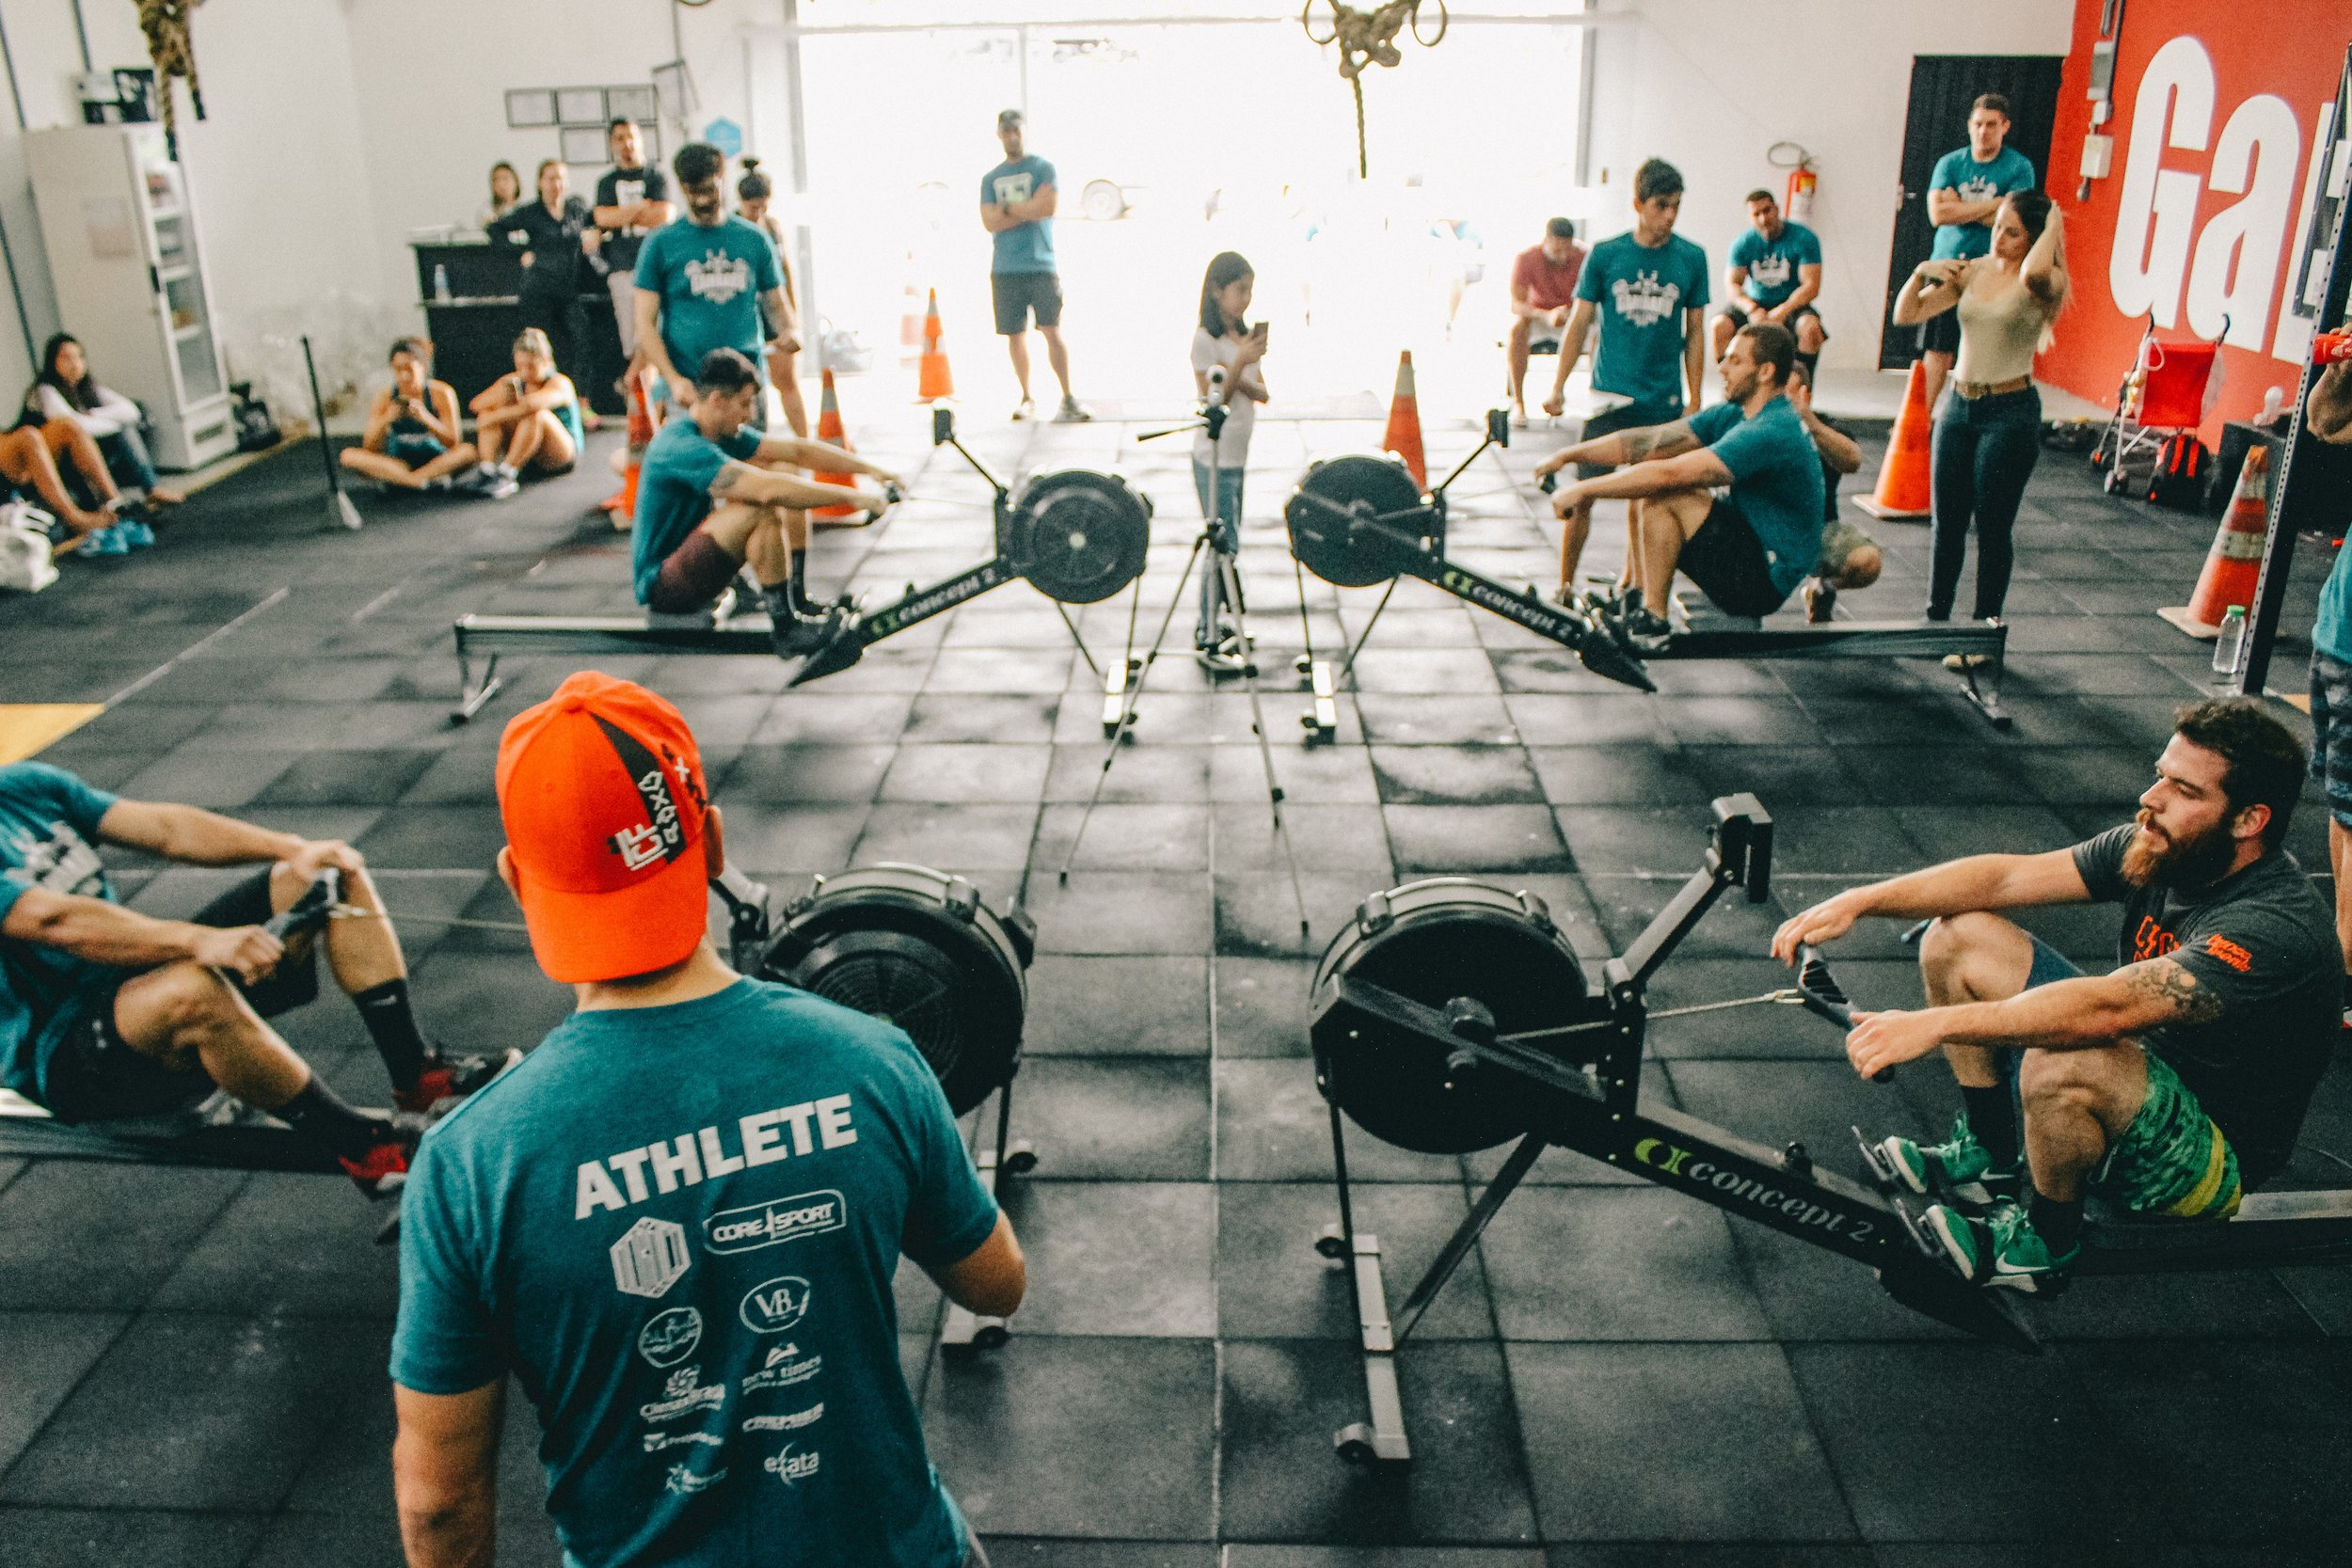 This image of several athletes training in a gym under the supervision of training staff is a good metaphor to training business skills.  Photo courtesy of  Victor Freitas  on  Unsplash